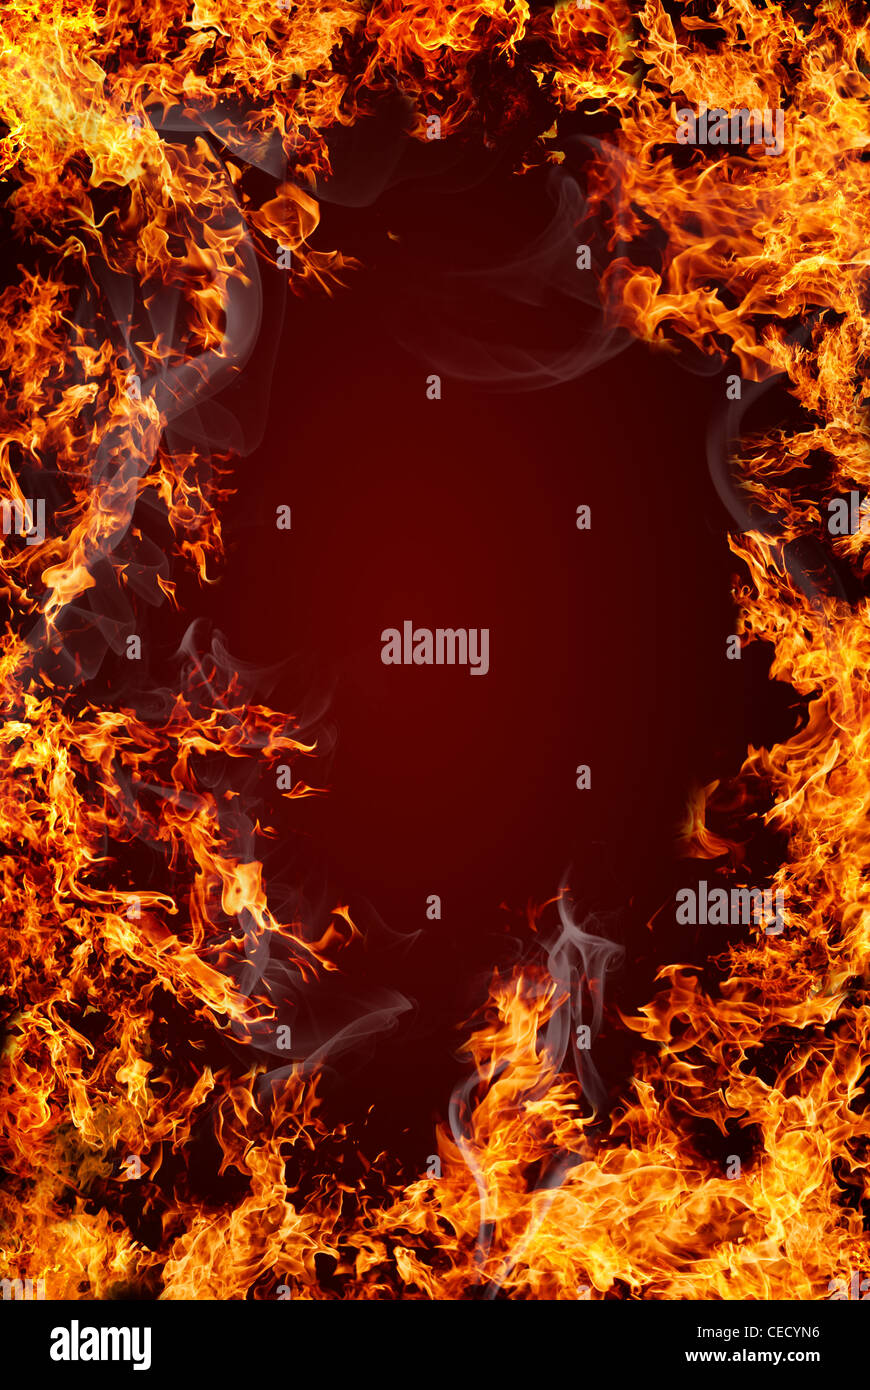 Fire frame with dark red center for text or object to be inserted - Stock Image